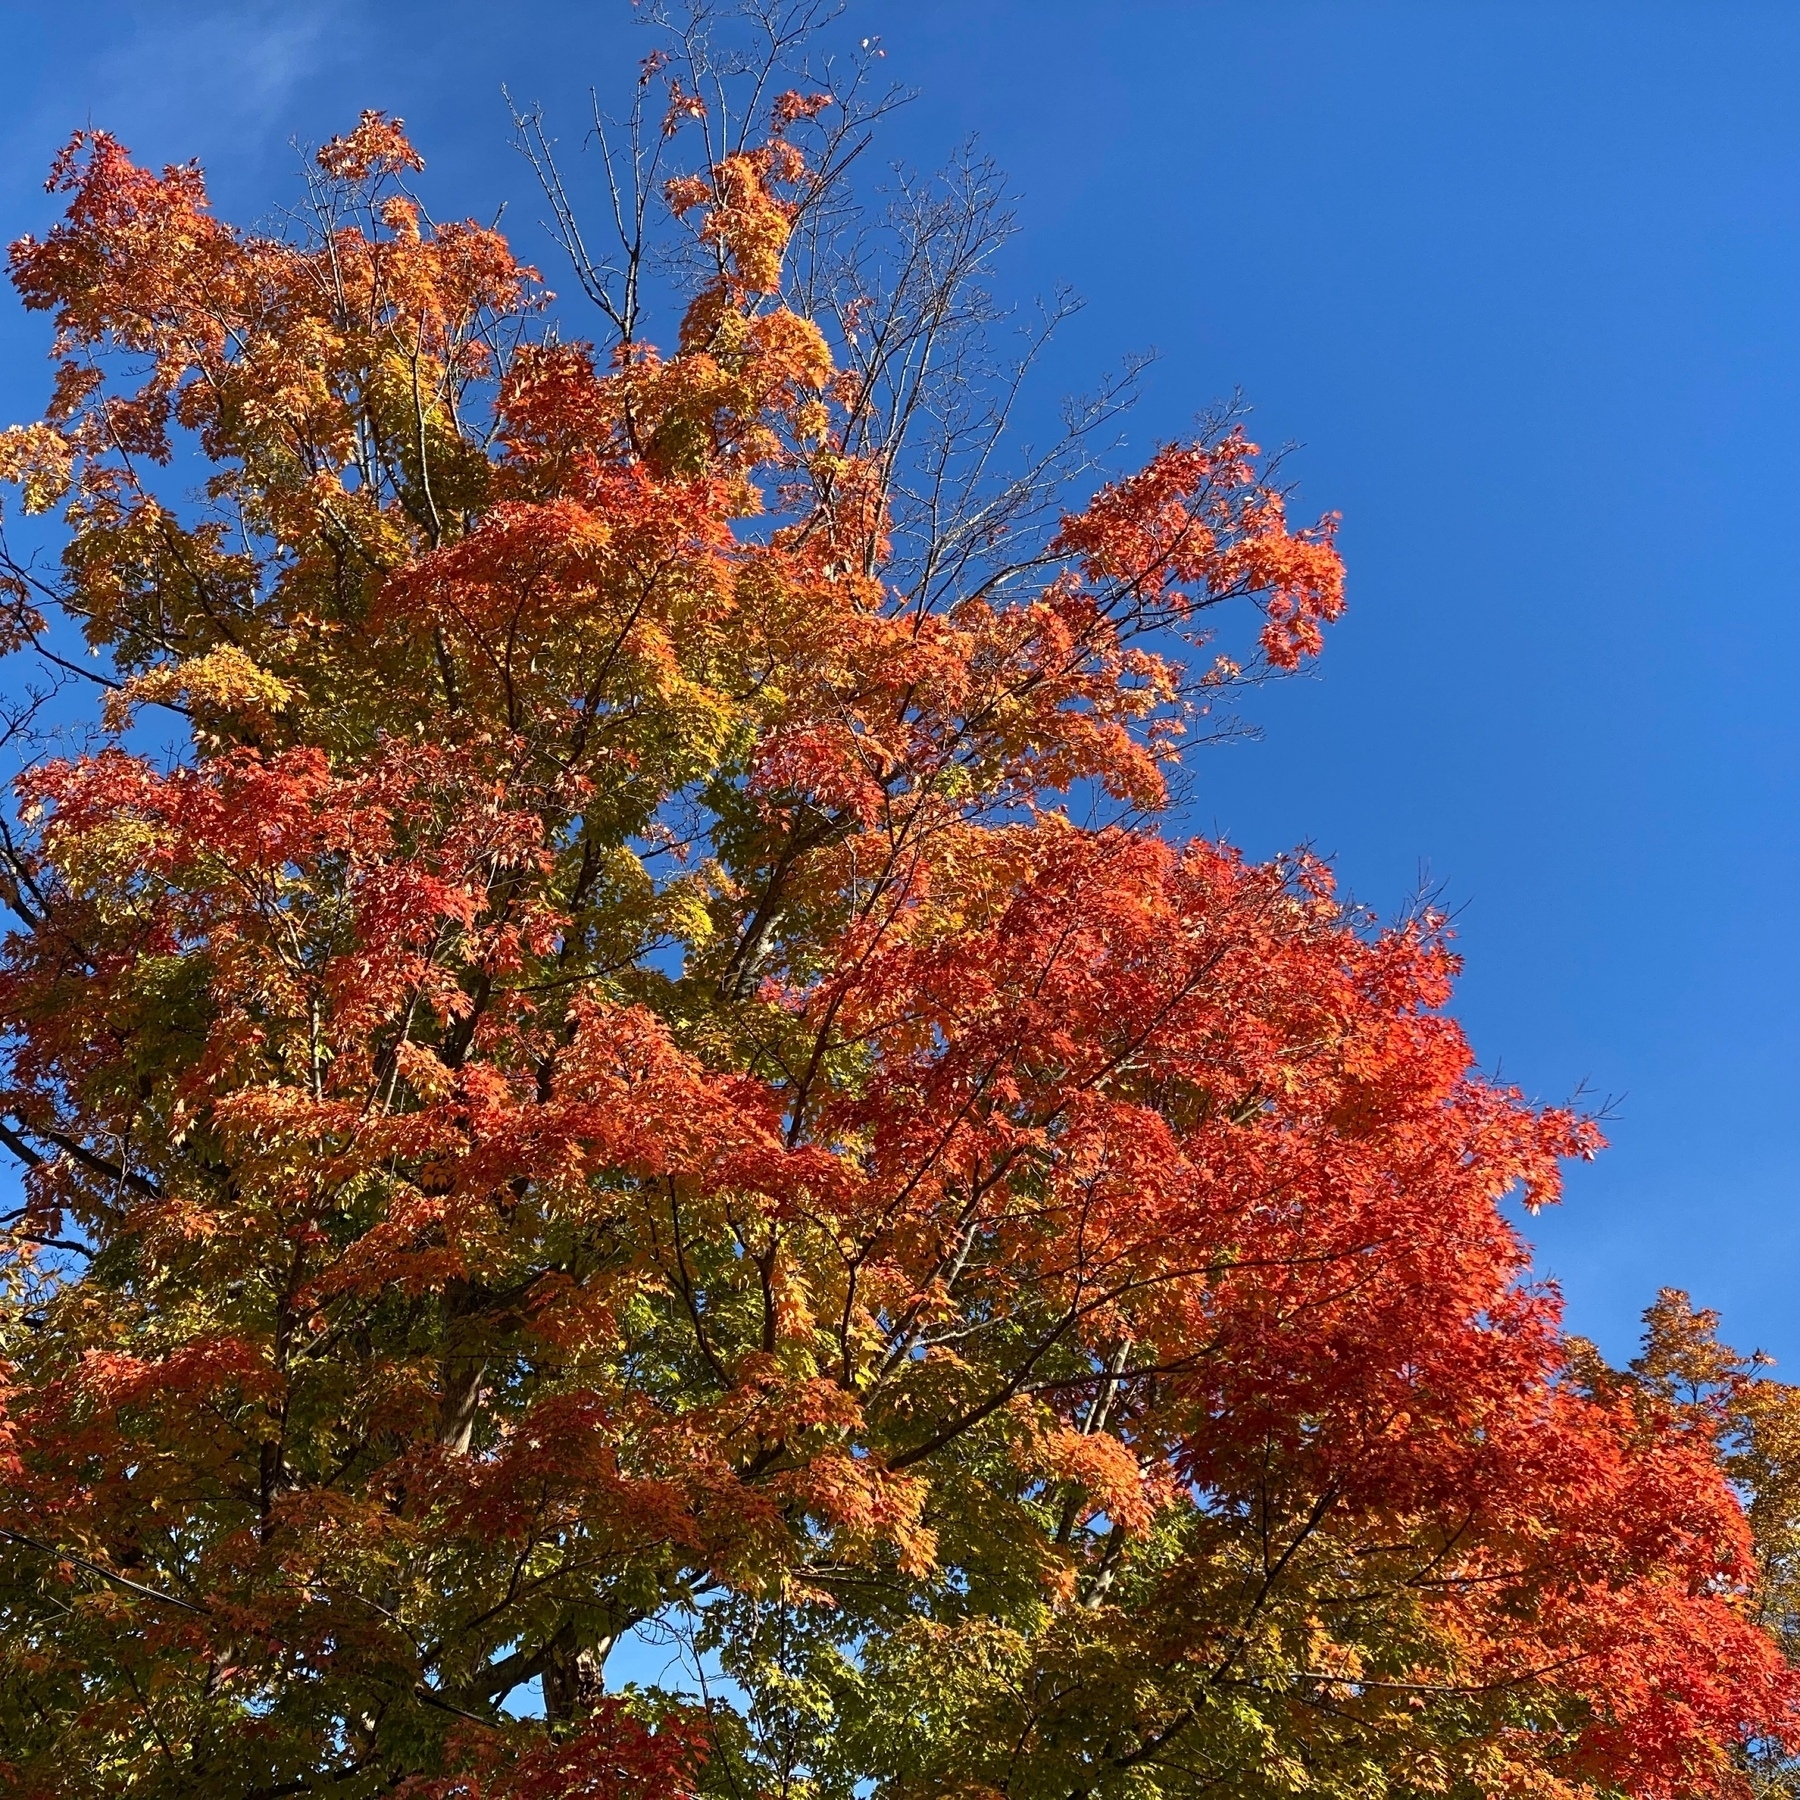 Red leaves on tree against a blue sky.